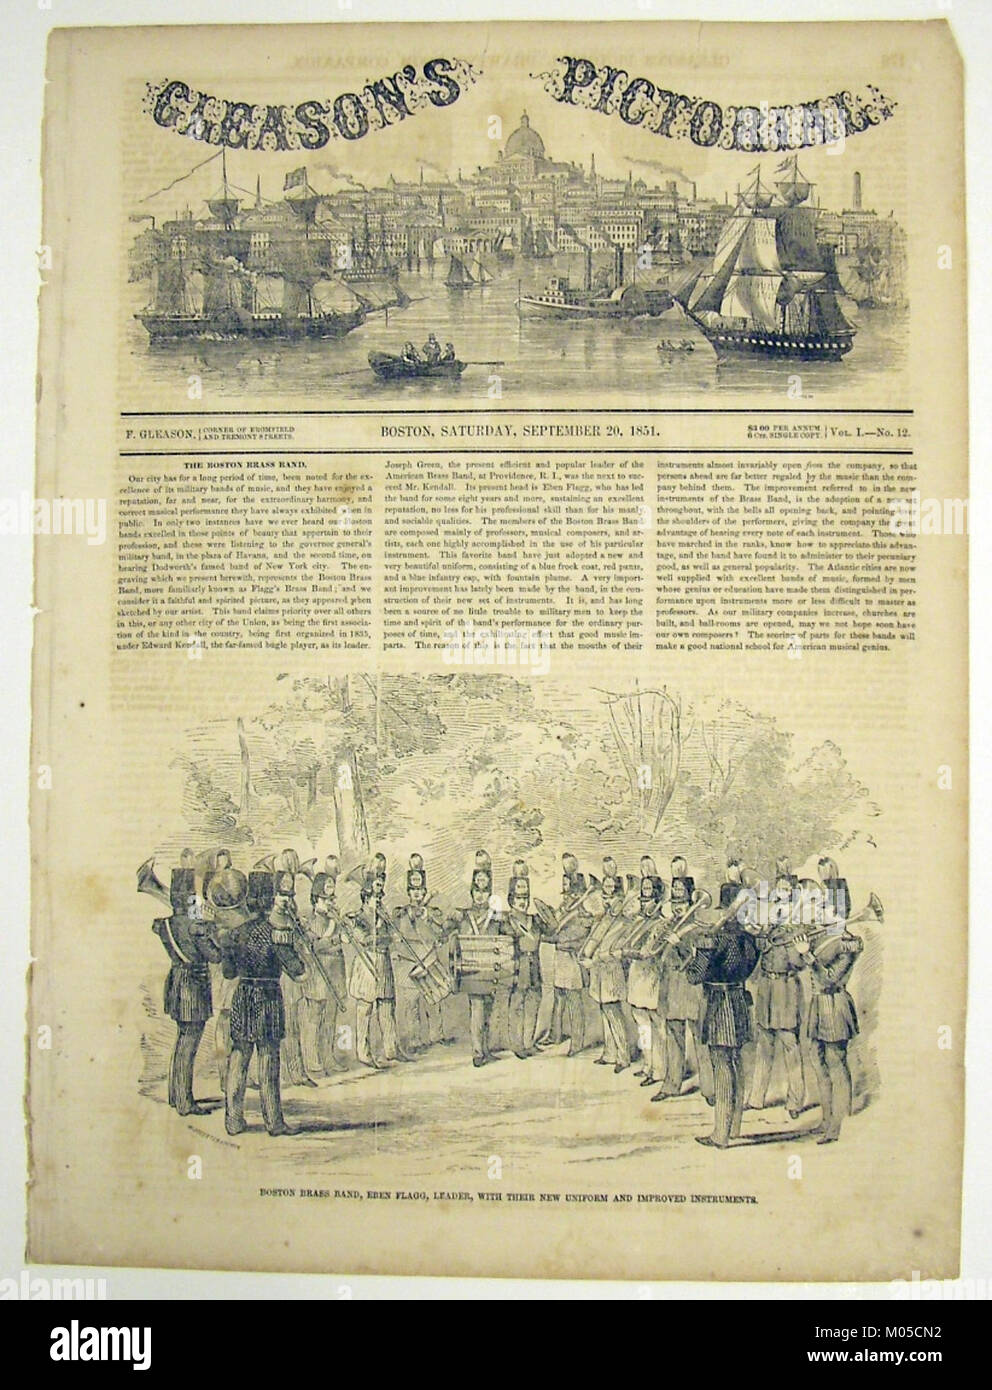 Boston Brass Band newspaper illustration MET MIDP2005.126.4 - Stock Image